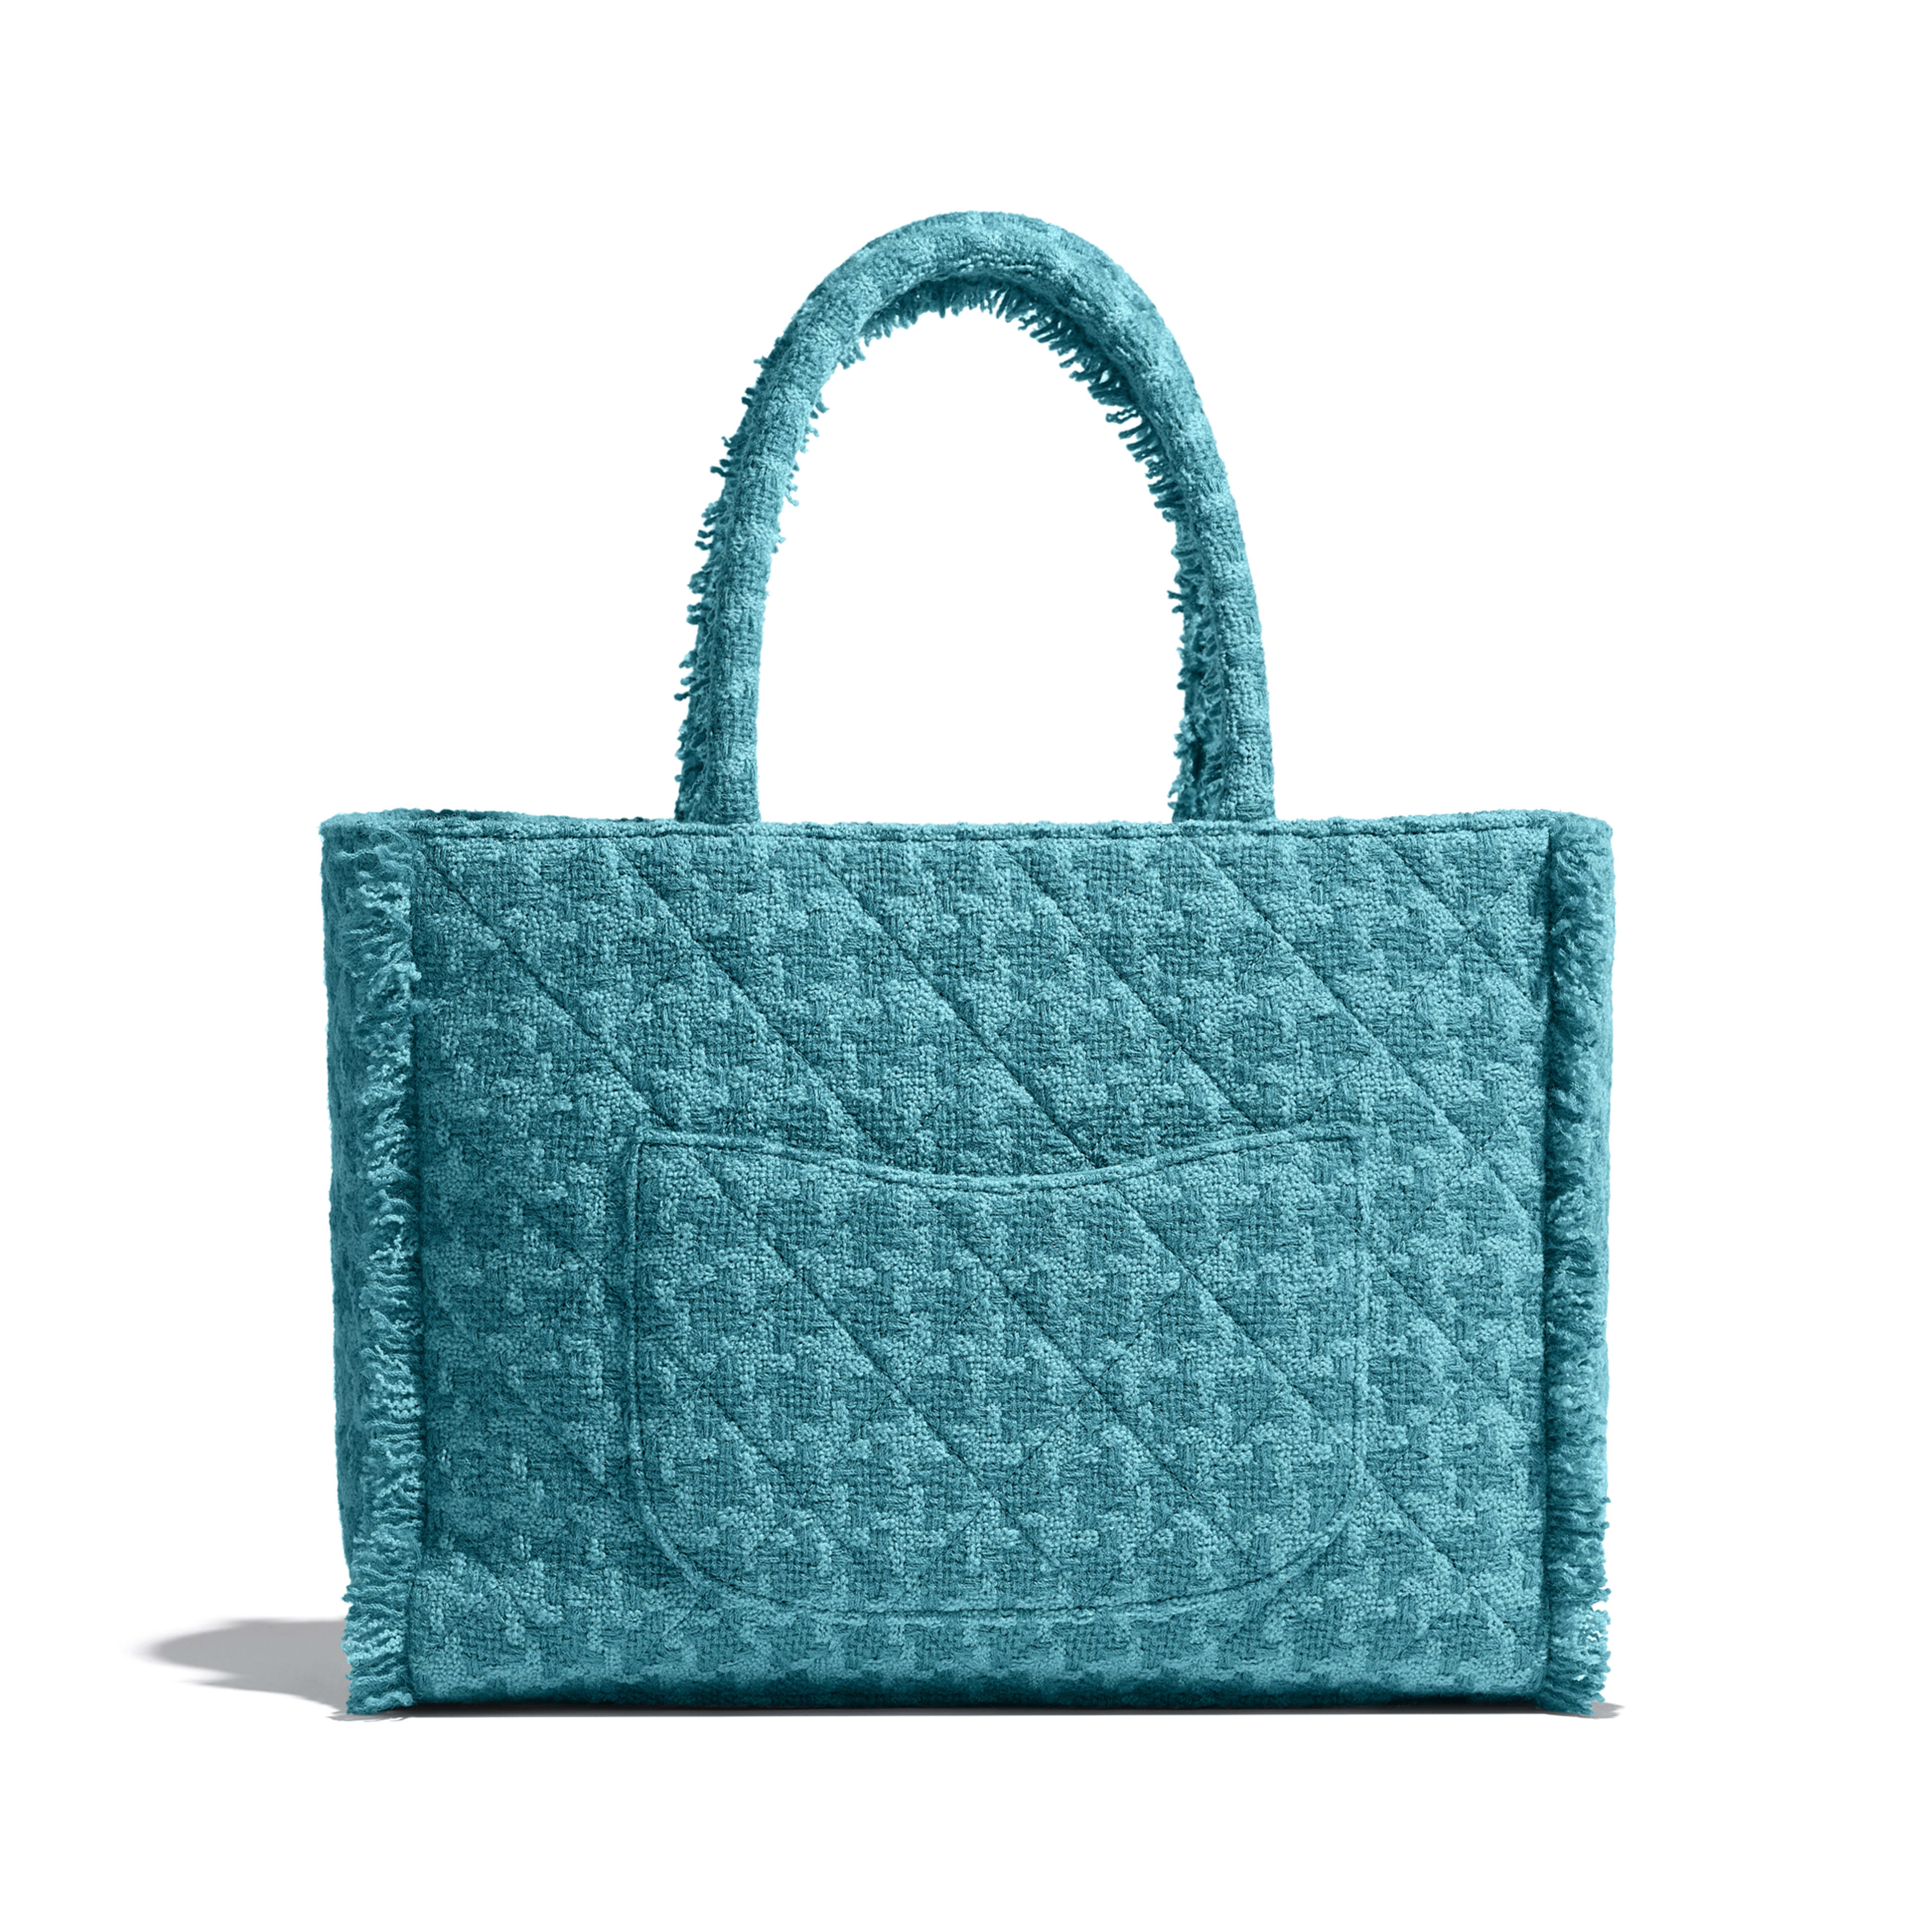 Zipped Shopping Bag - Turquoise - Wool Tweed & Gold-Tone Metal - Alternative view - see full sized version